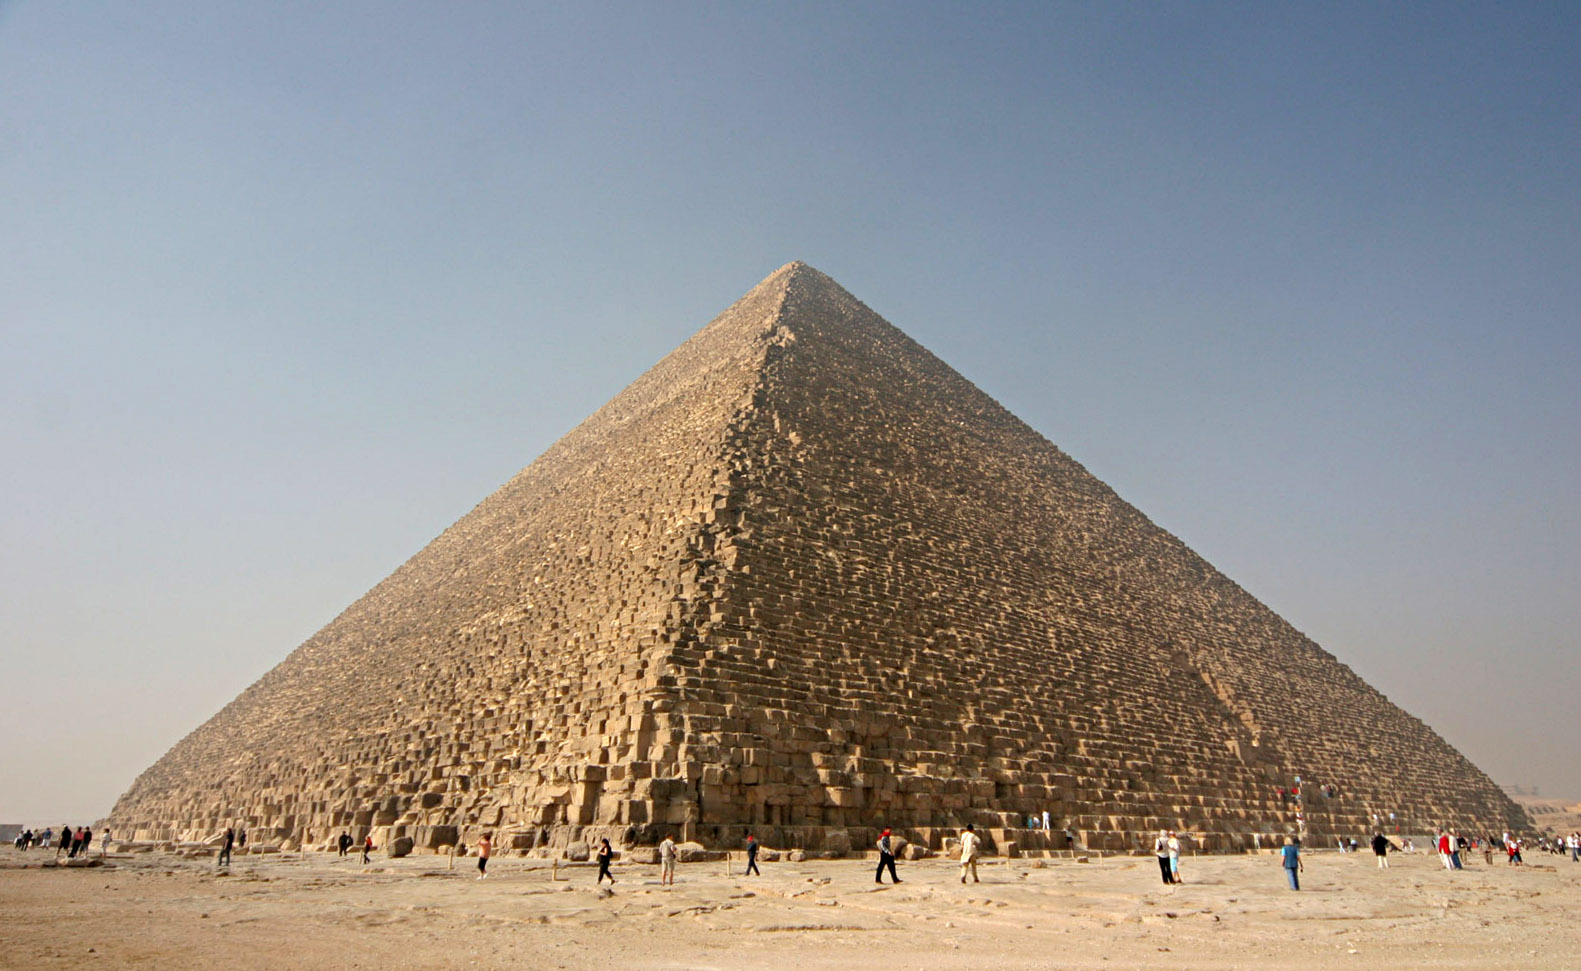 The Pyramid of Kheops